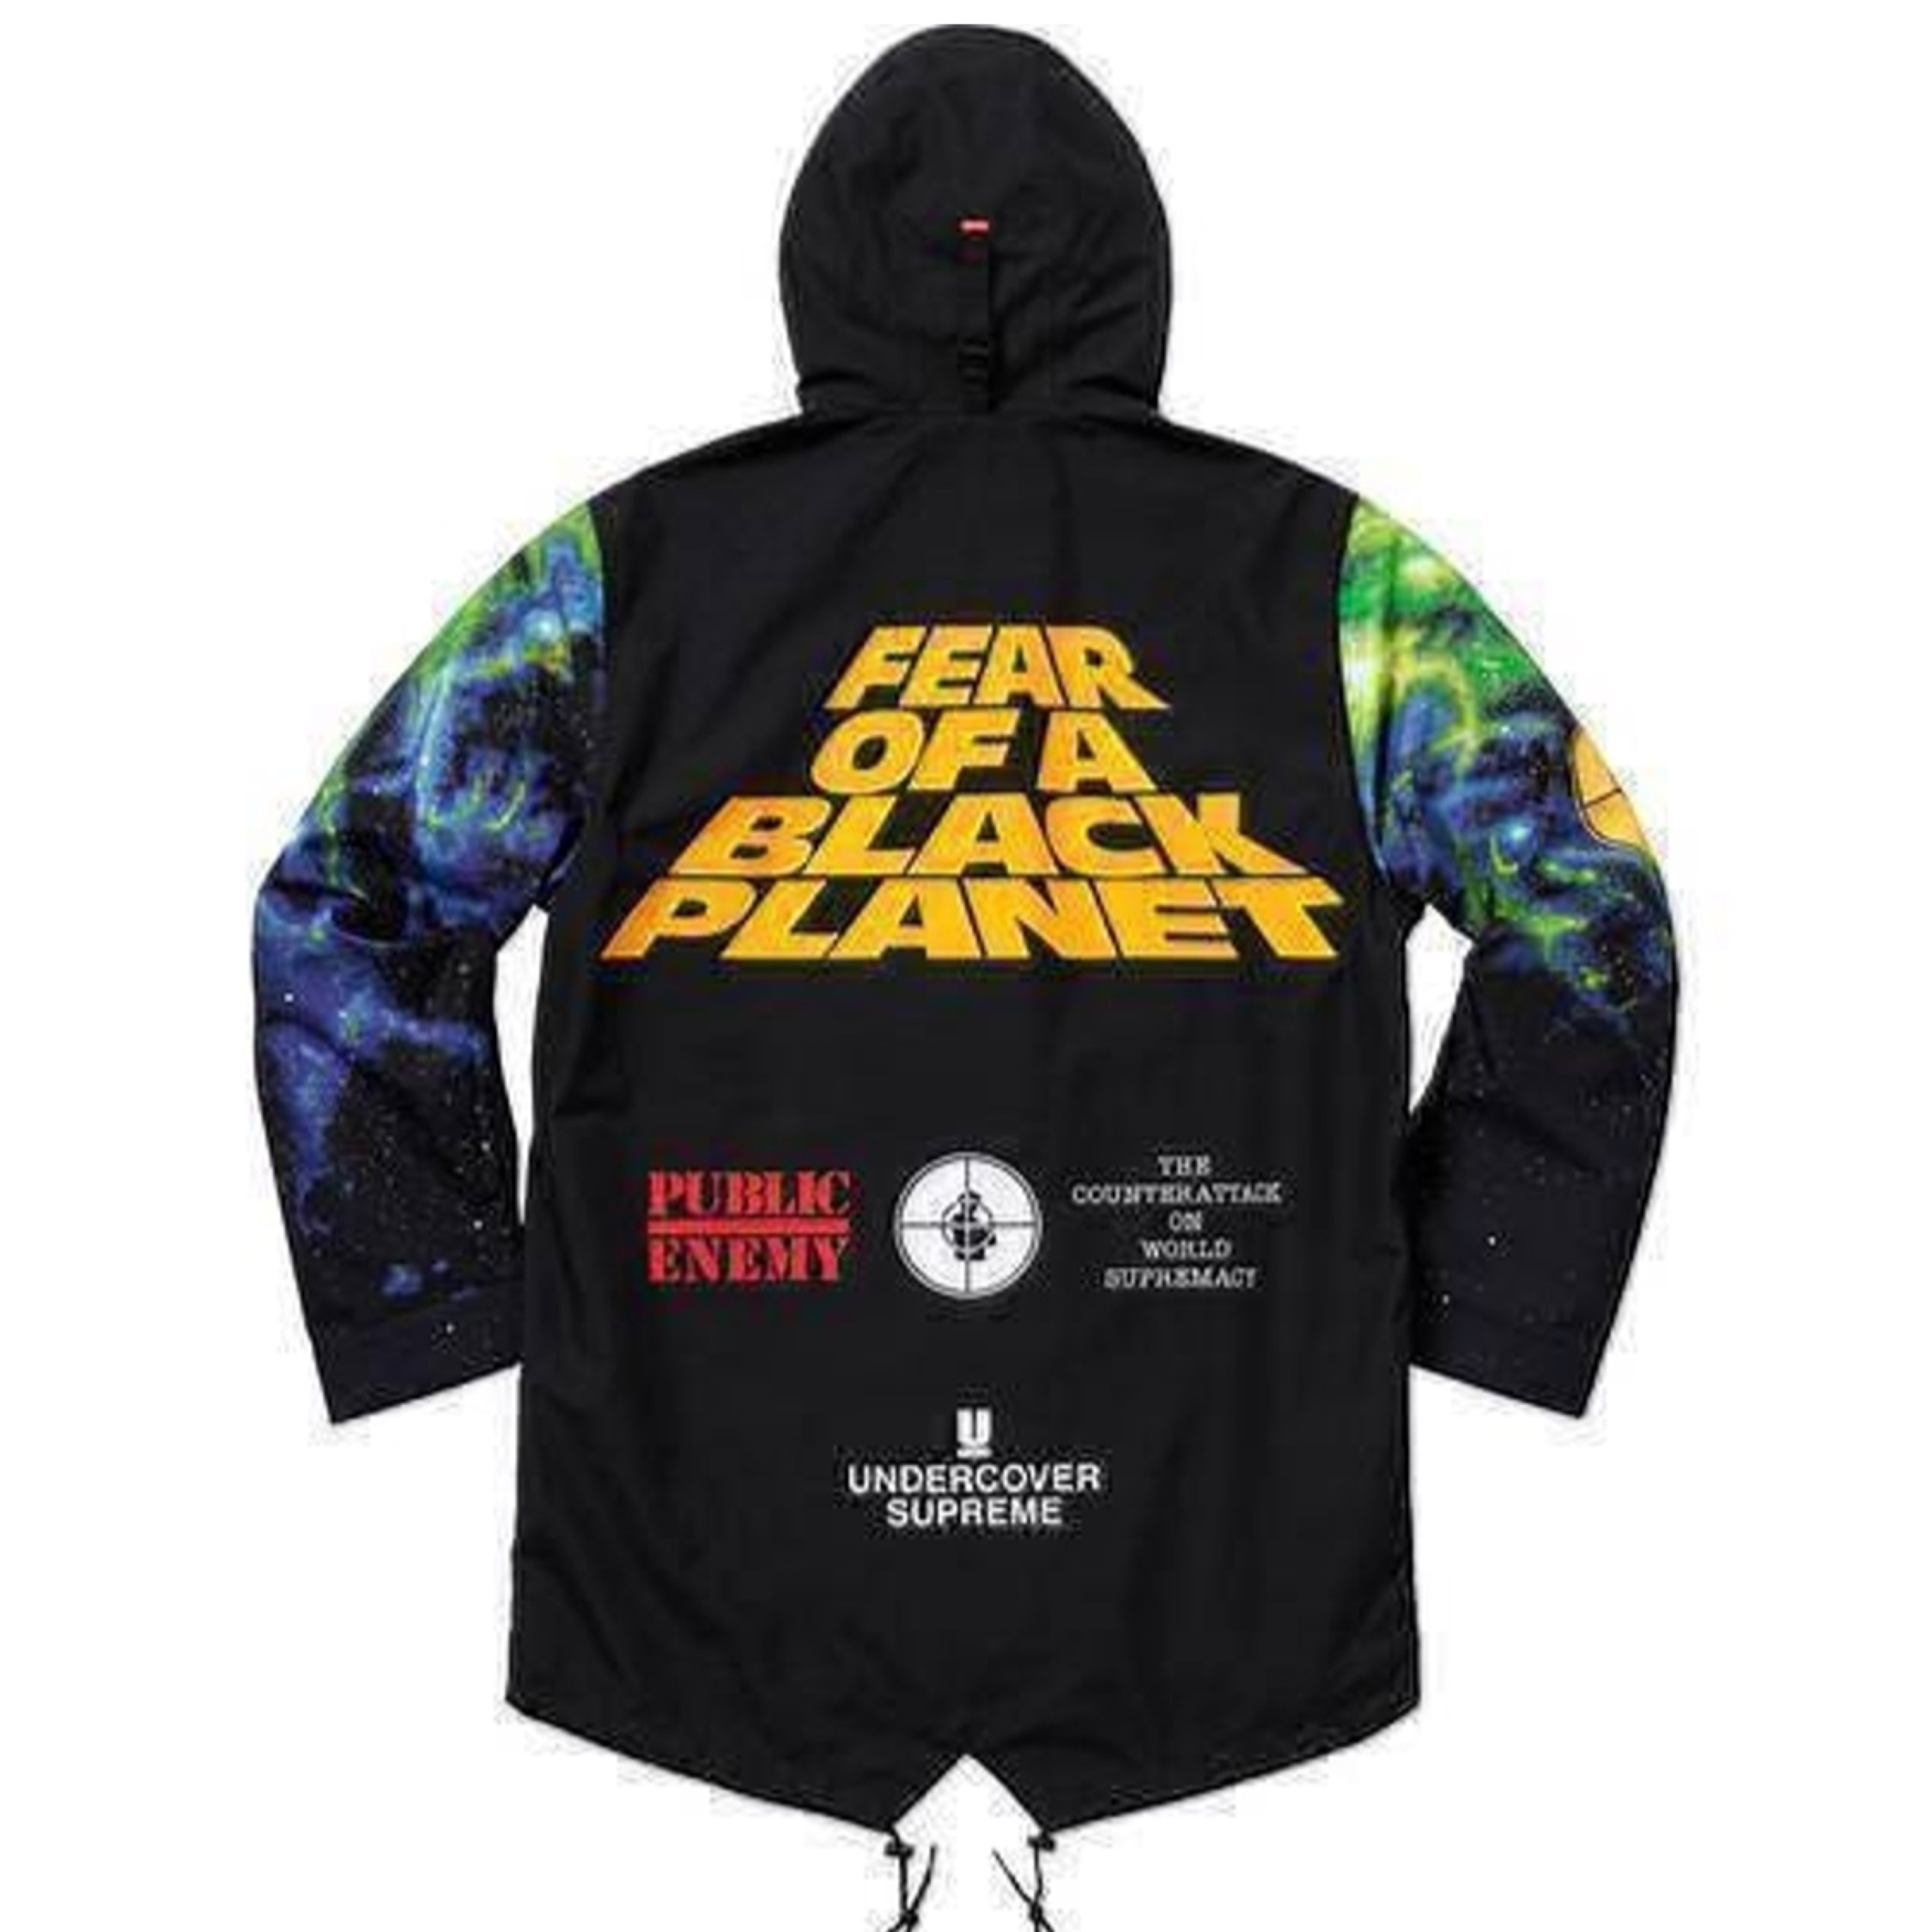 Supreme X Undercover Public Enemy Taped Seam Parka